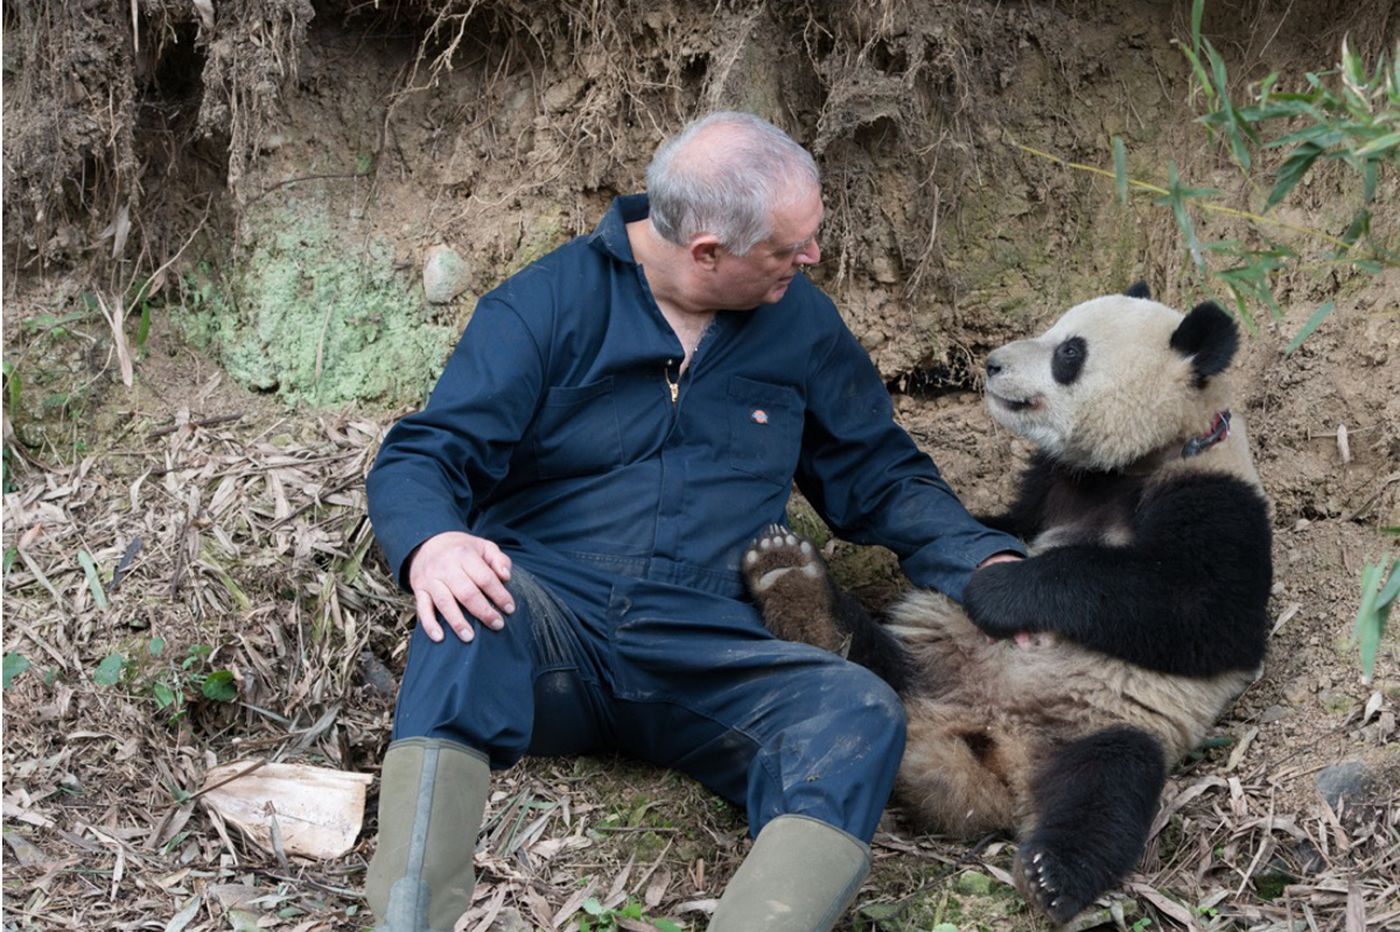 In 'Pandas' film, Drexel team helps release artificially bred bears into the wild